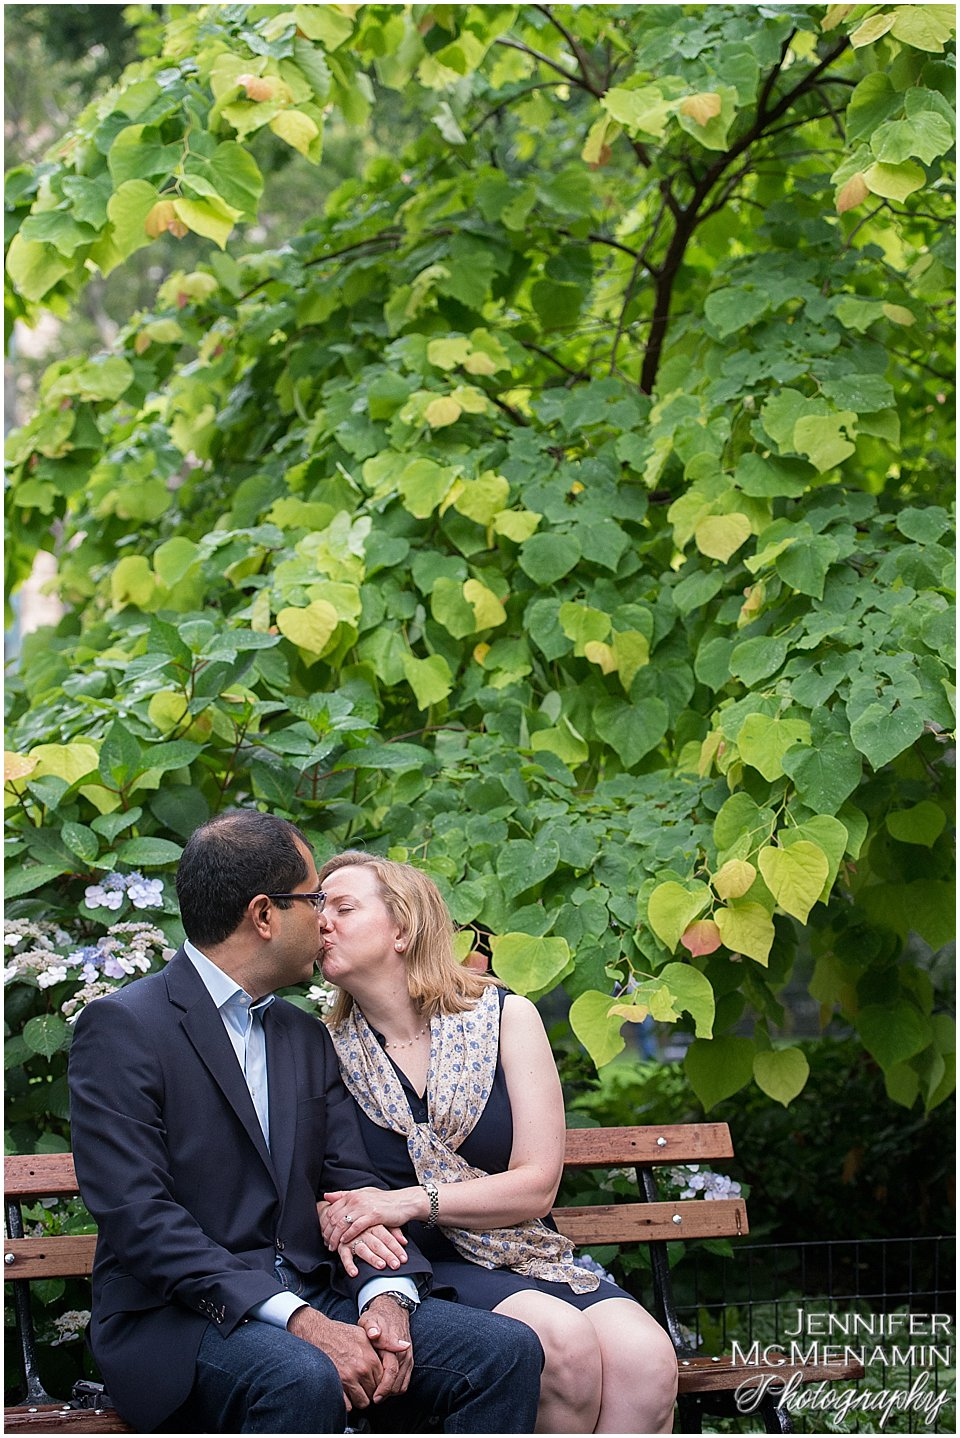 010-AkehurstShetty_0339-0073_Jennifer-McMenamin-Photography-New-York-City-engagement-photos